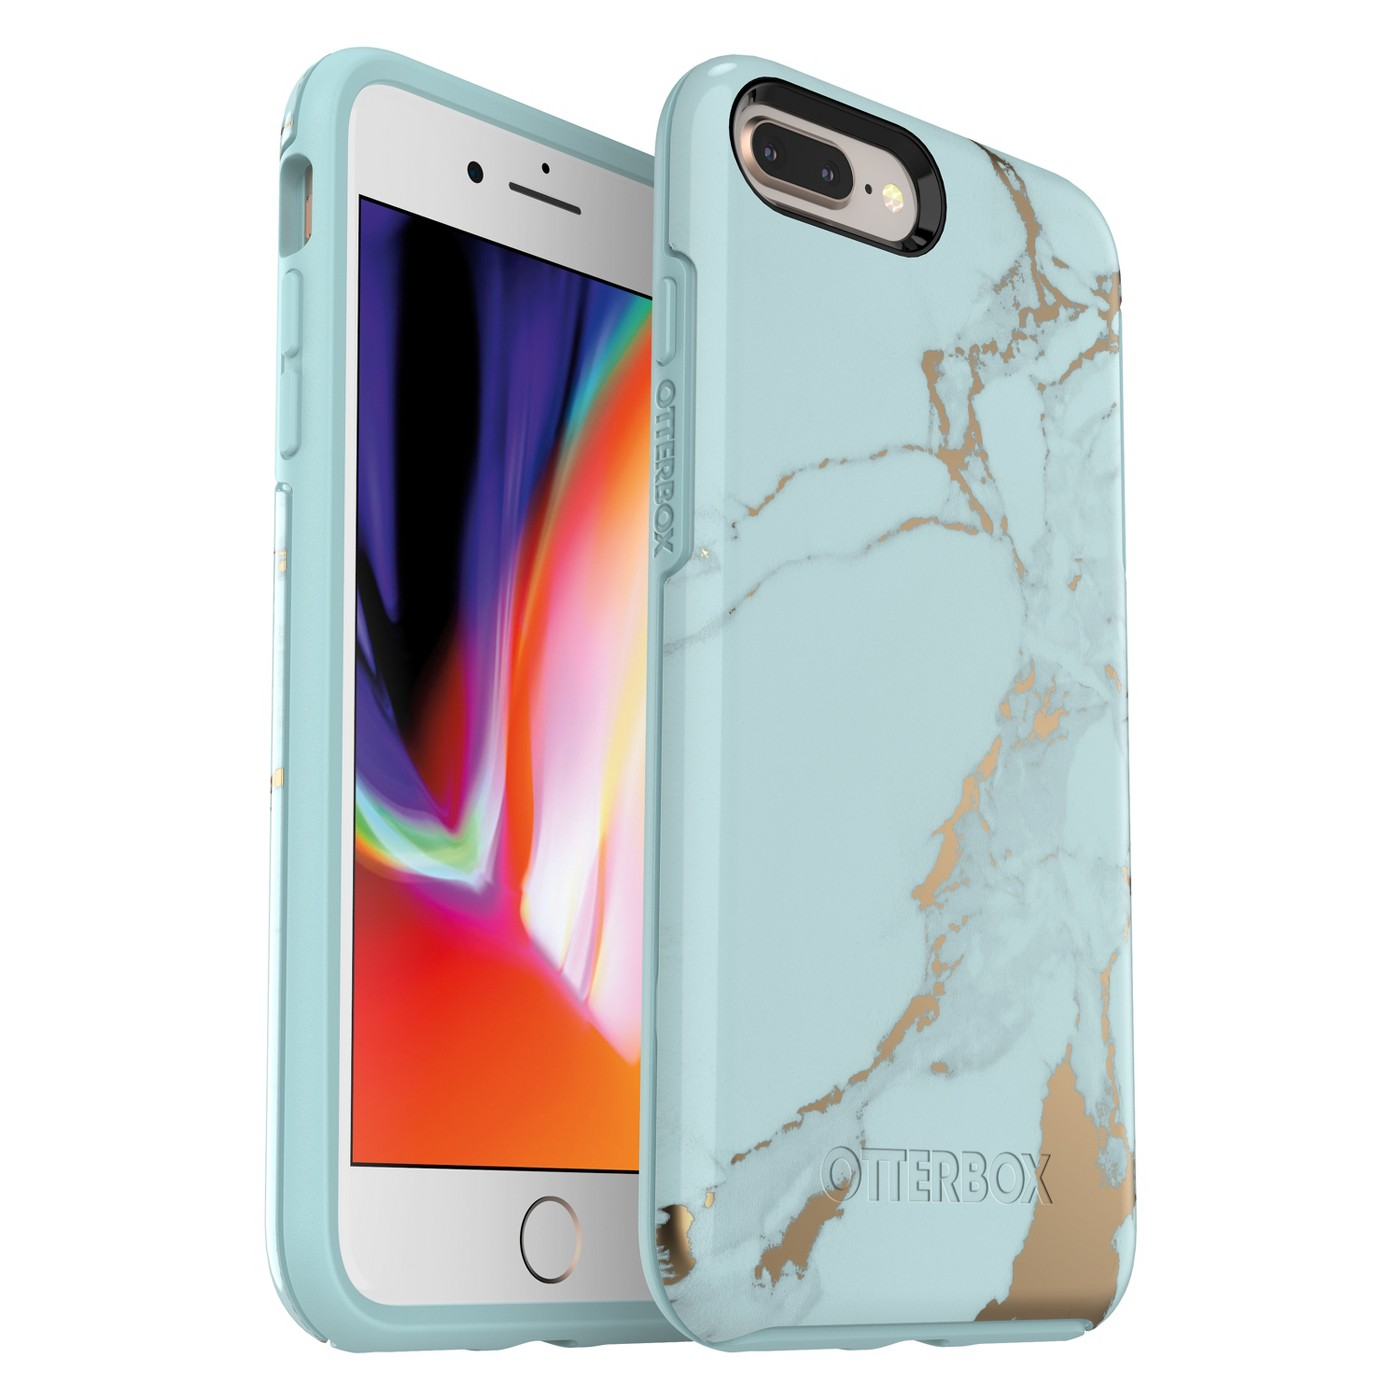 OtterBox Apple iPhone 8 Plus/7 Plus Symmetry Case - Teal Marble - image 1 of 4